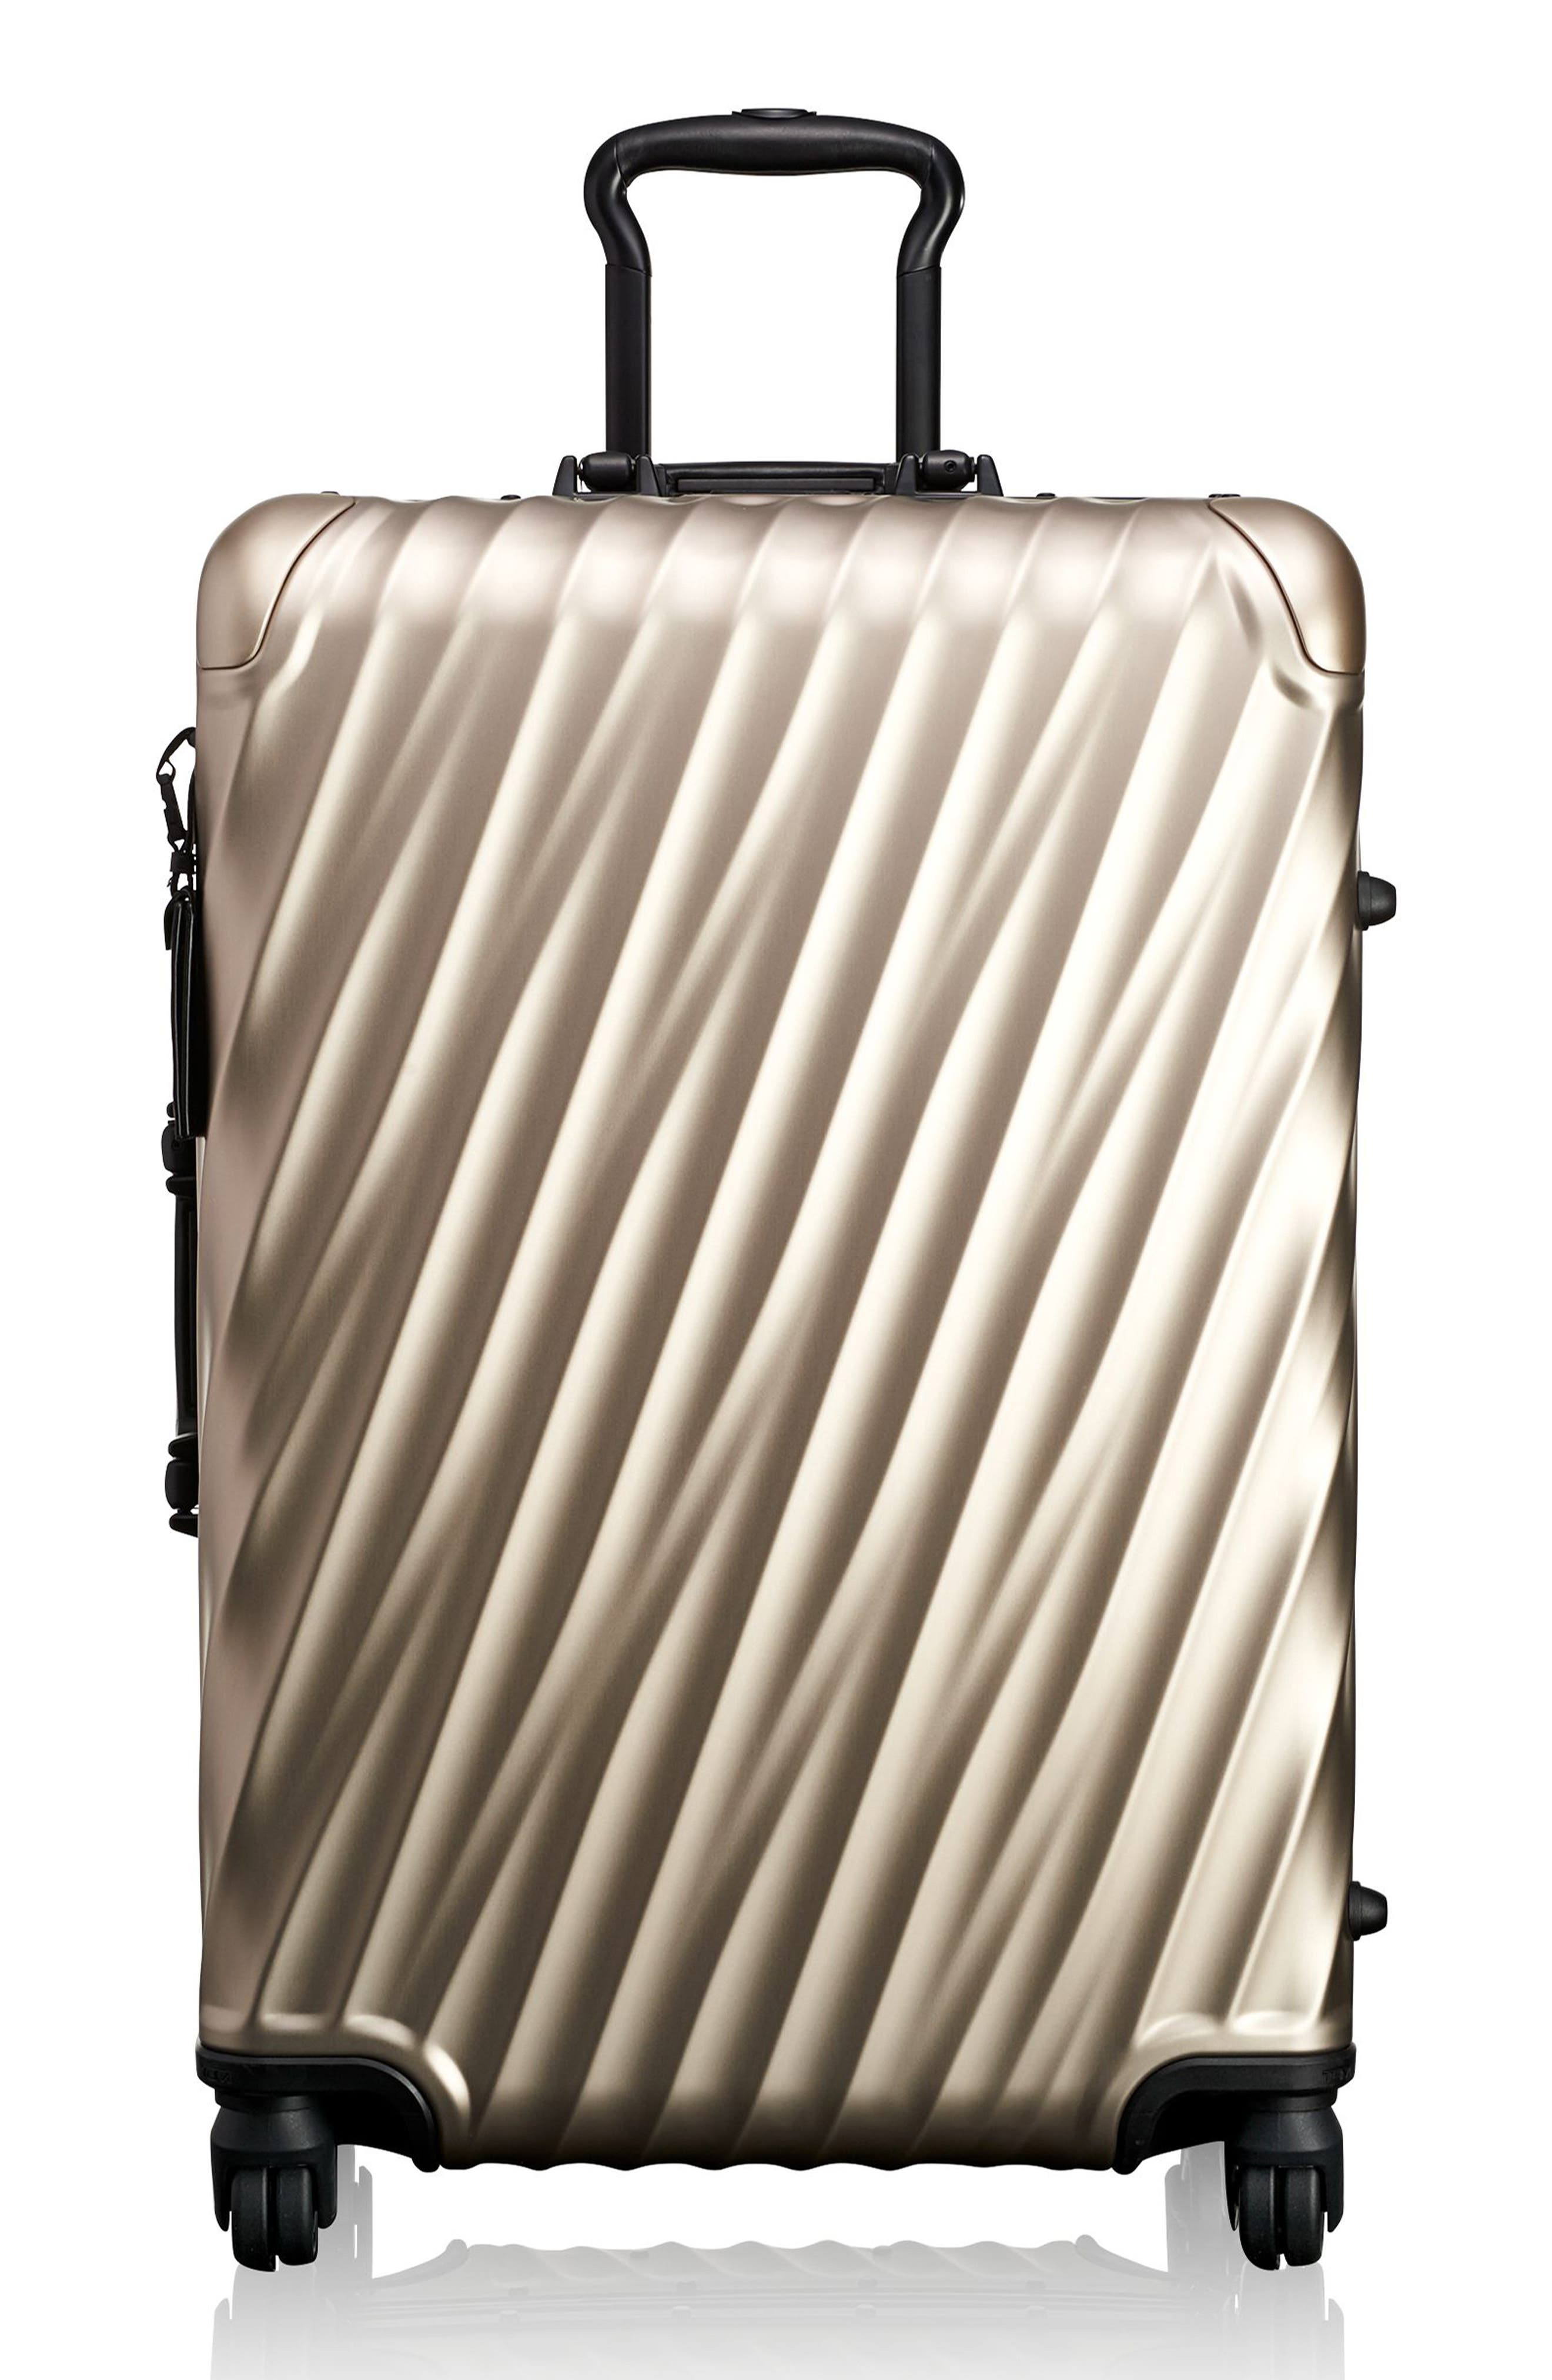 19-Degree 26-Inch Aluminum Spinner Packing Case,                             Main thumbnail 1, color,                             100